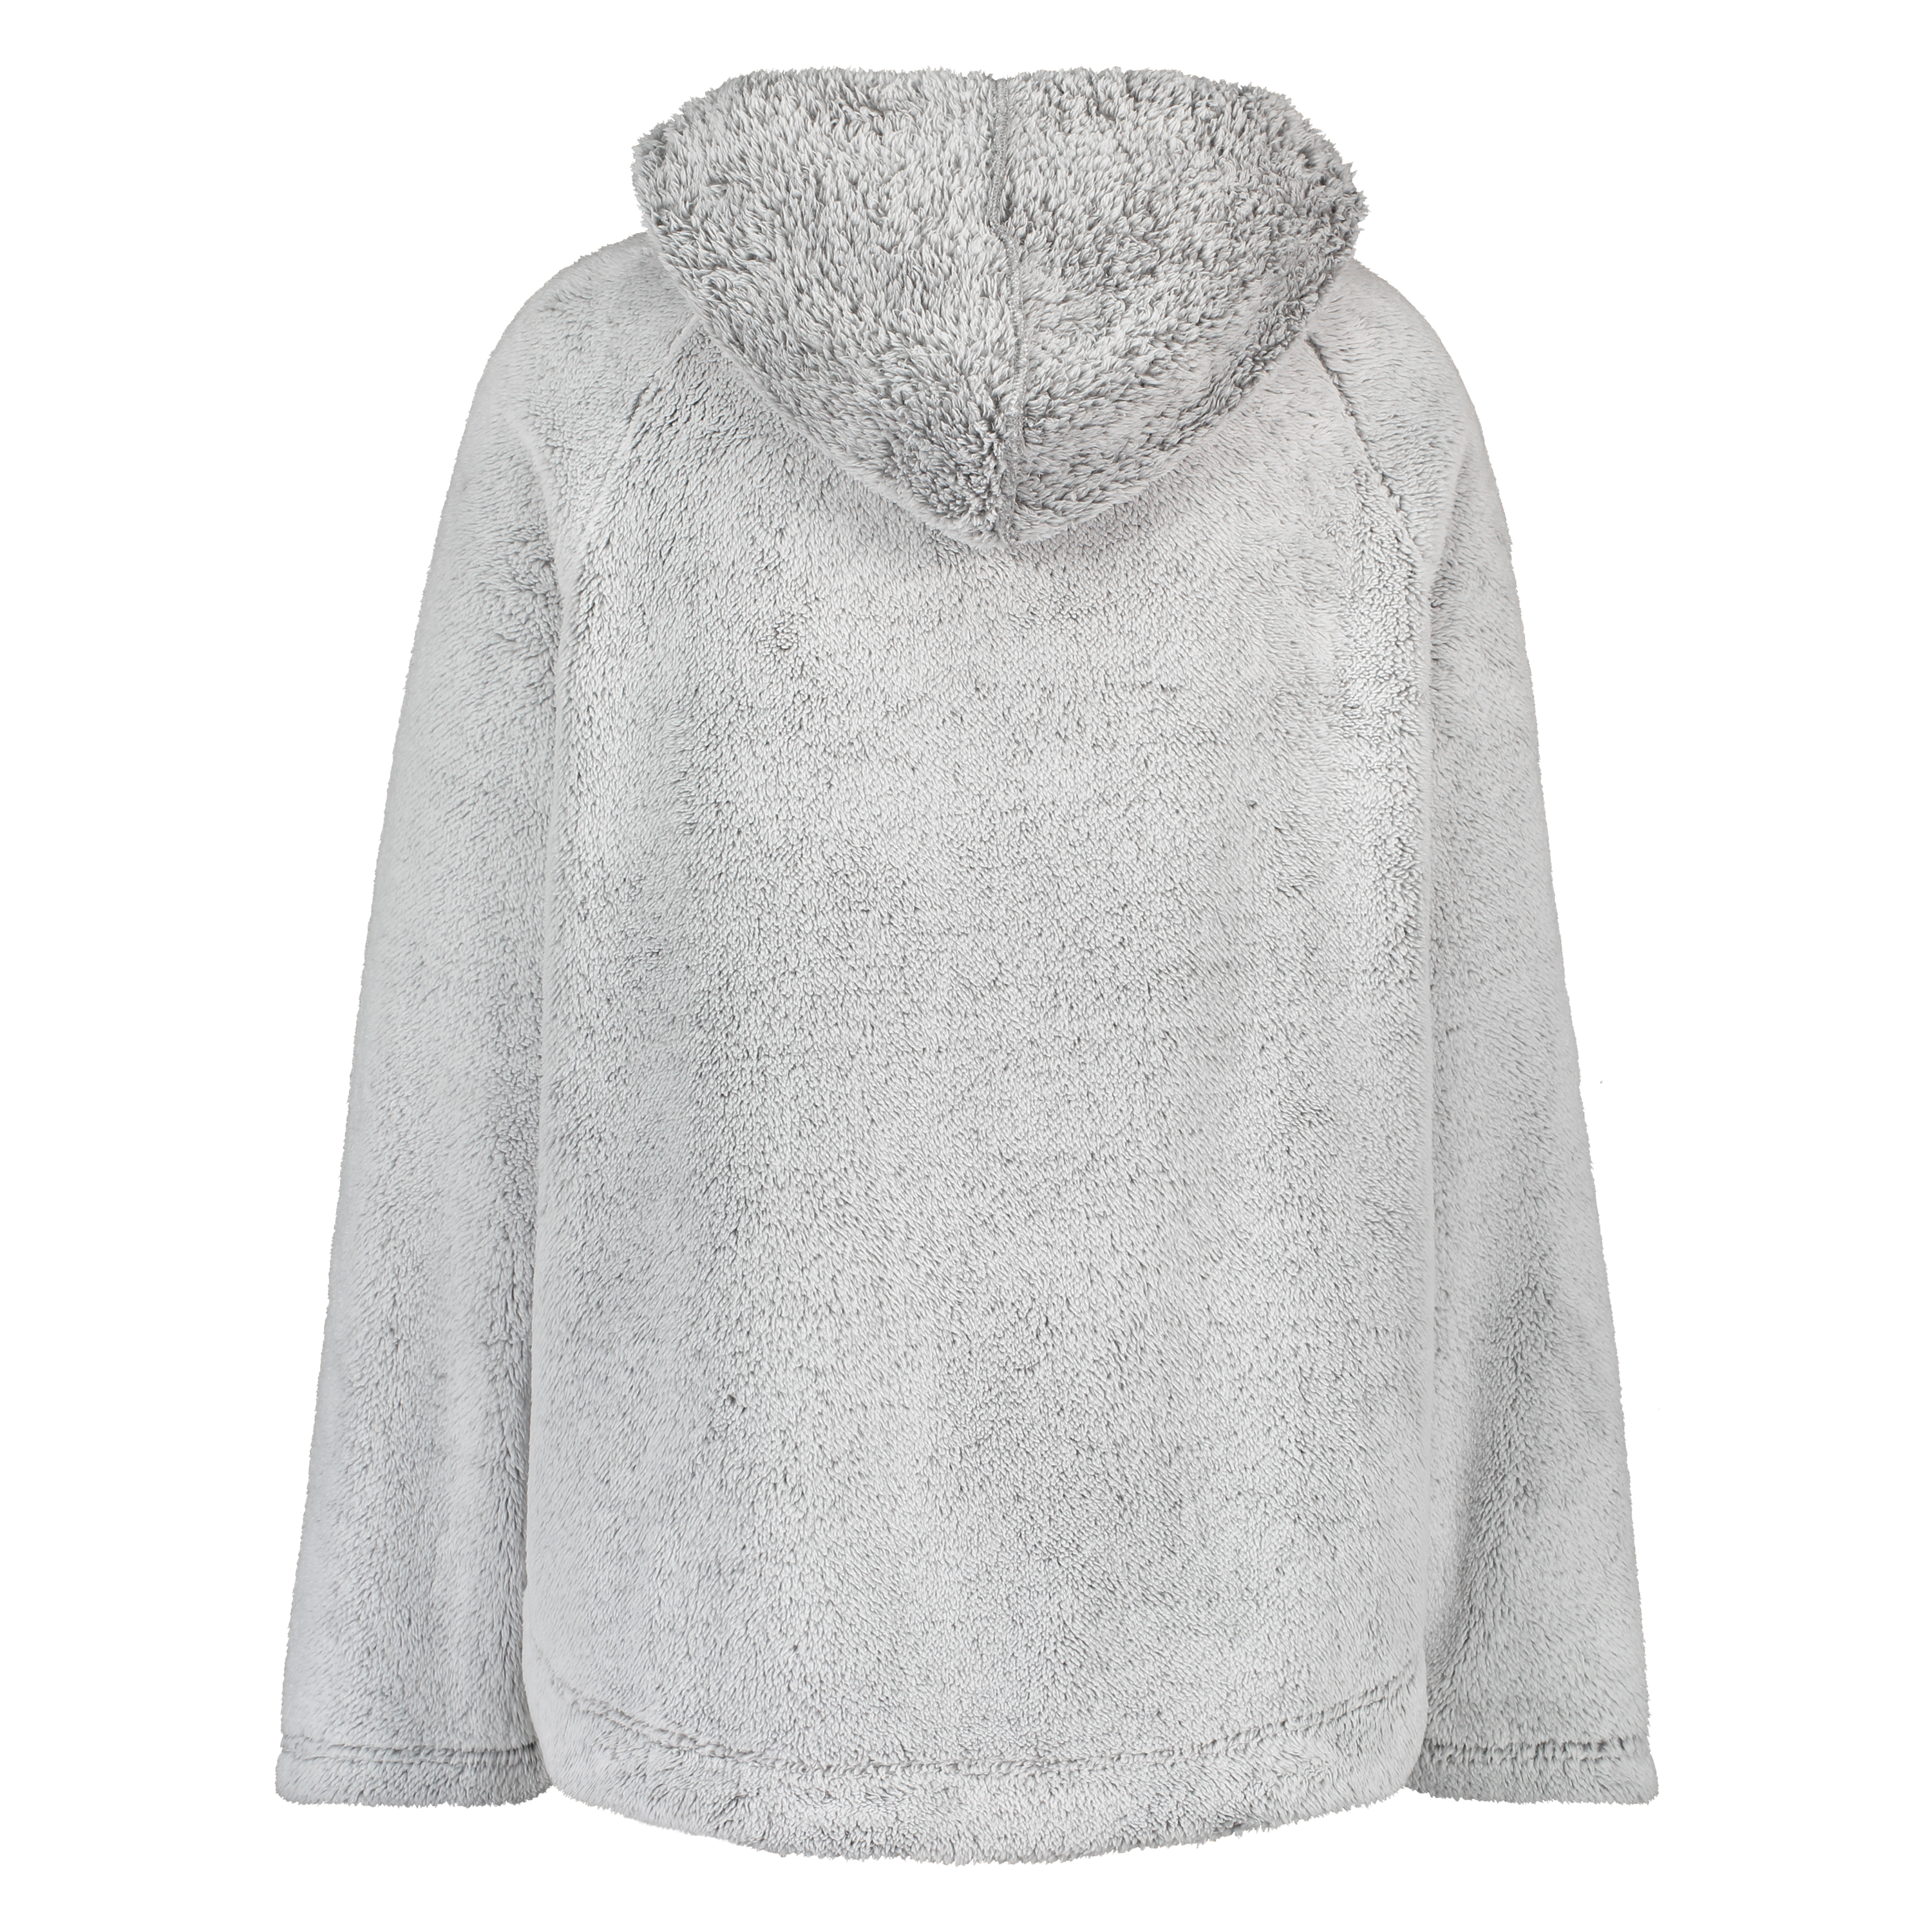 Poncho aus Fleece, Grau, main